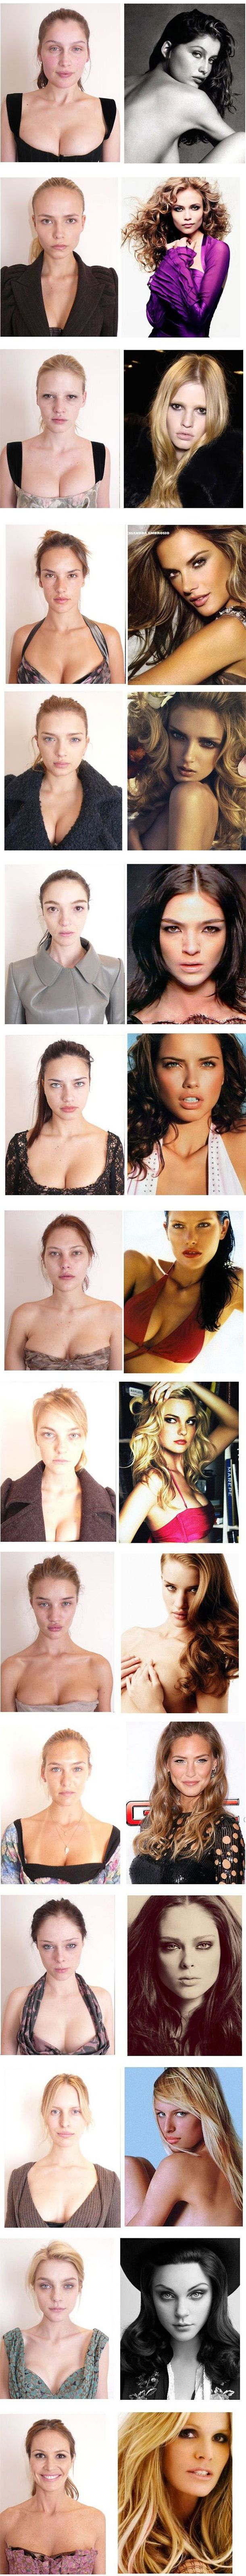 Models, before and after makeup. - Guess they're human afterall